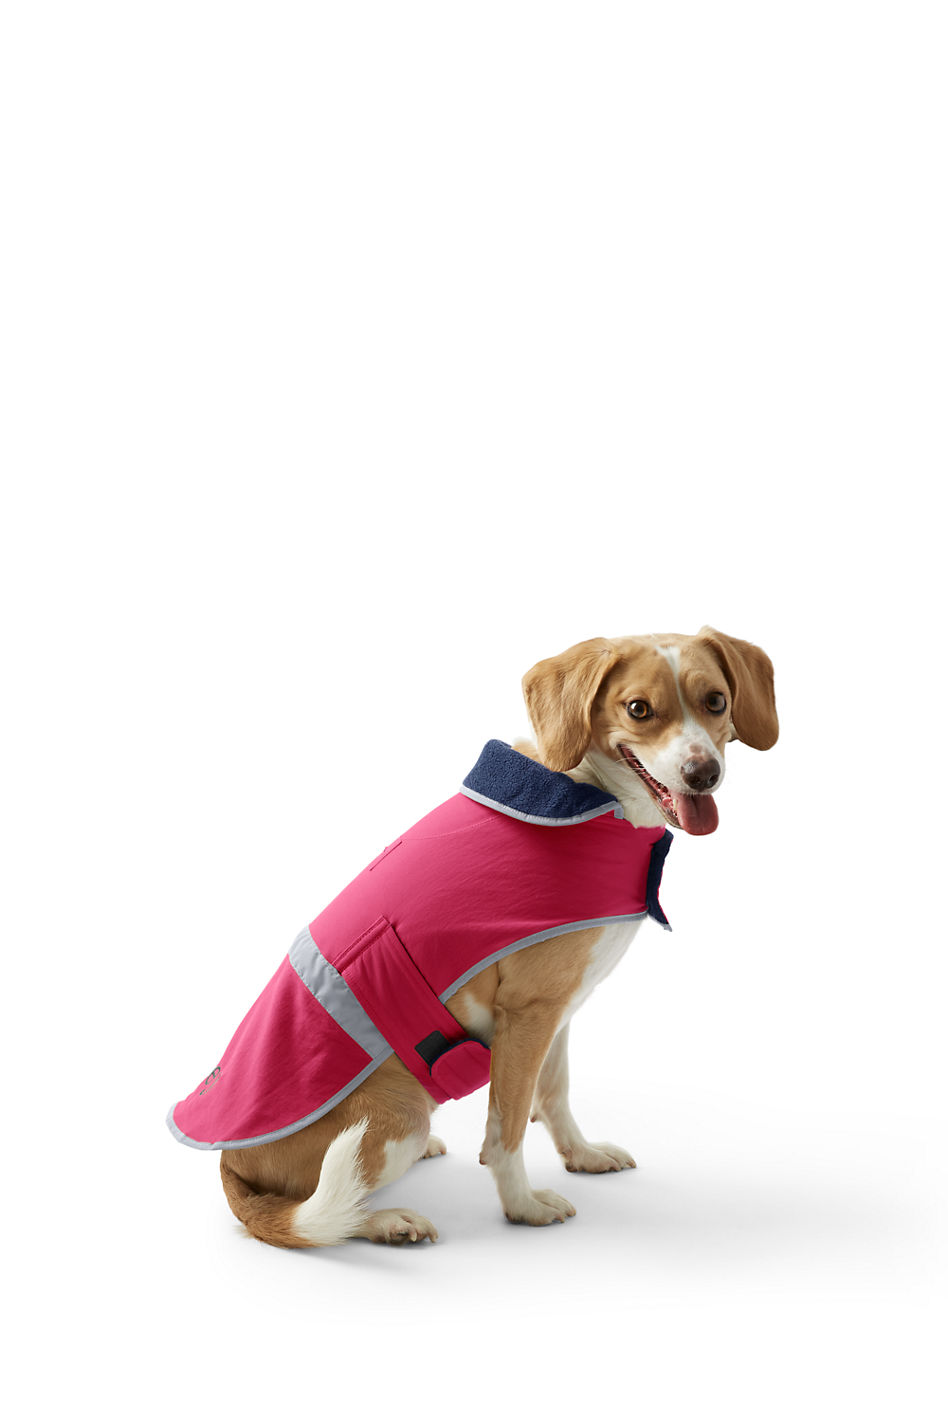 The Dog Squall Jacket from Land's End will keep Fido dry in Seattle's rainy weather. The ideal barrier to outside elements, this jacket is made of water-resistant nylon with a full lining of warm, anti-pilling and anti-static fleece to keep your dog warm and dry. The reflective strap and binding will keep you and your dog visible on evening walks. The adjustable hook and loop closures ensure a great fit. The jacket is machine washable.{&amp;nbsp;}Find out more at landsend.com. (Image: Land's End)<p></p>